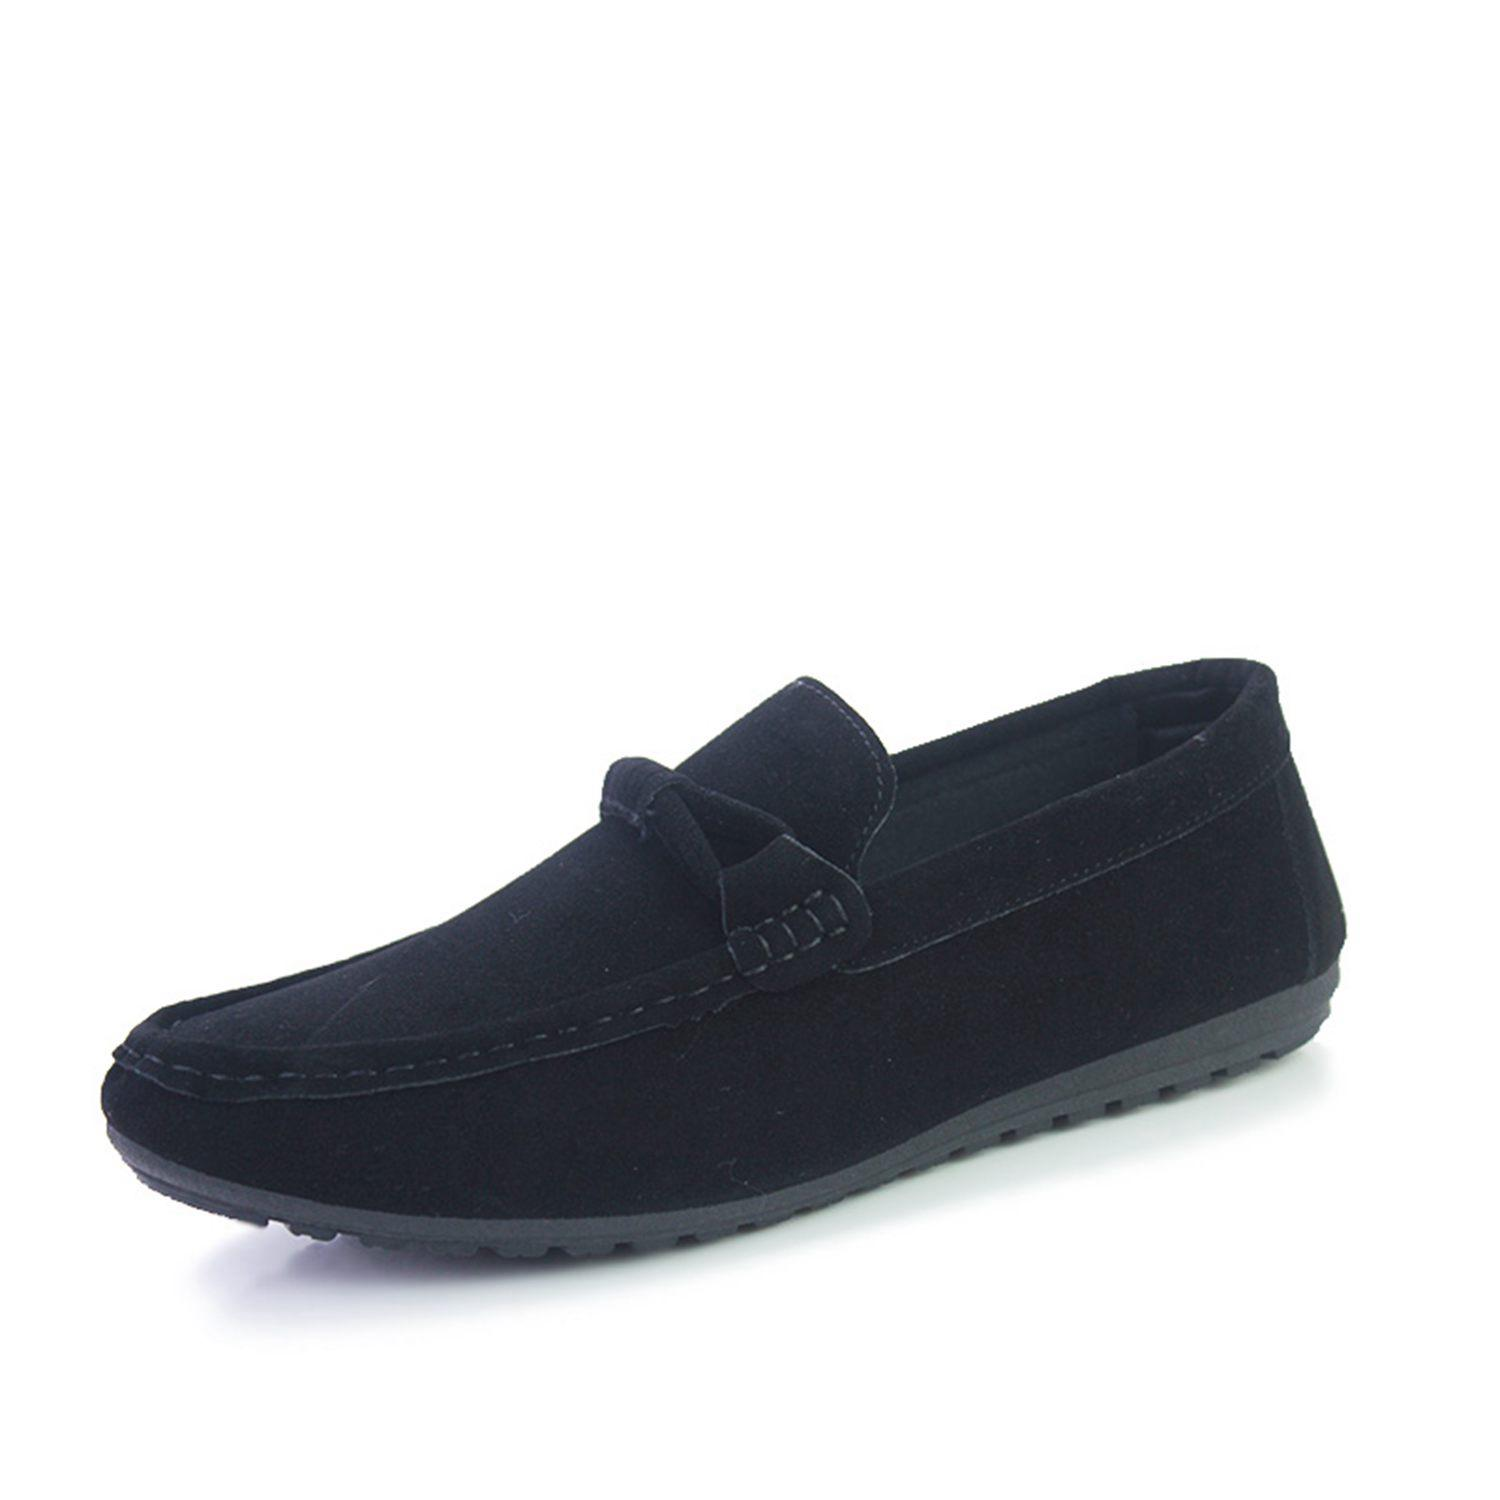 ABDB-Suede Leather Men Flats 2018 New Soft Men Casual Shoes High Quality Men Loafers Flats Gommino Driving Shoes Black 44